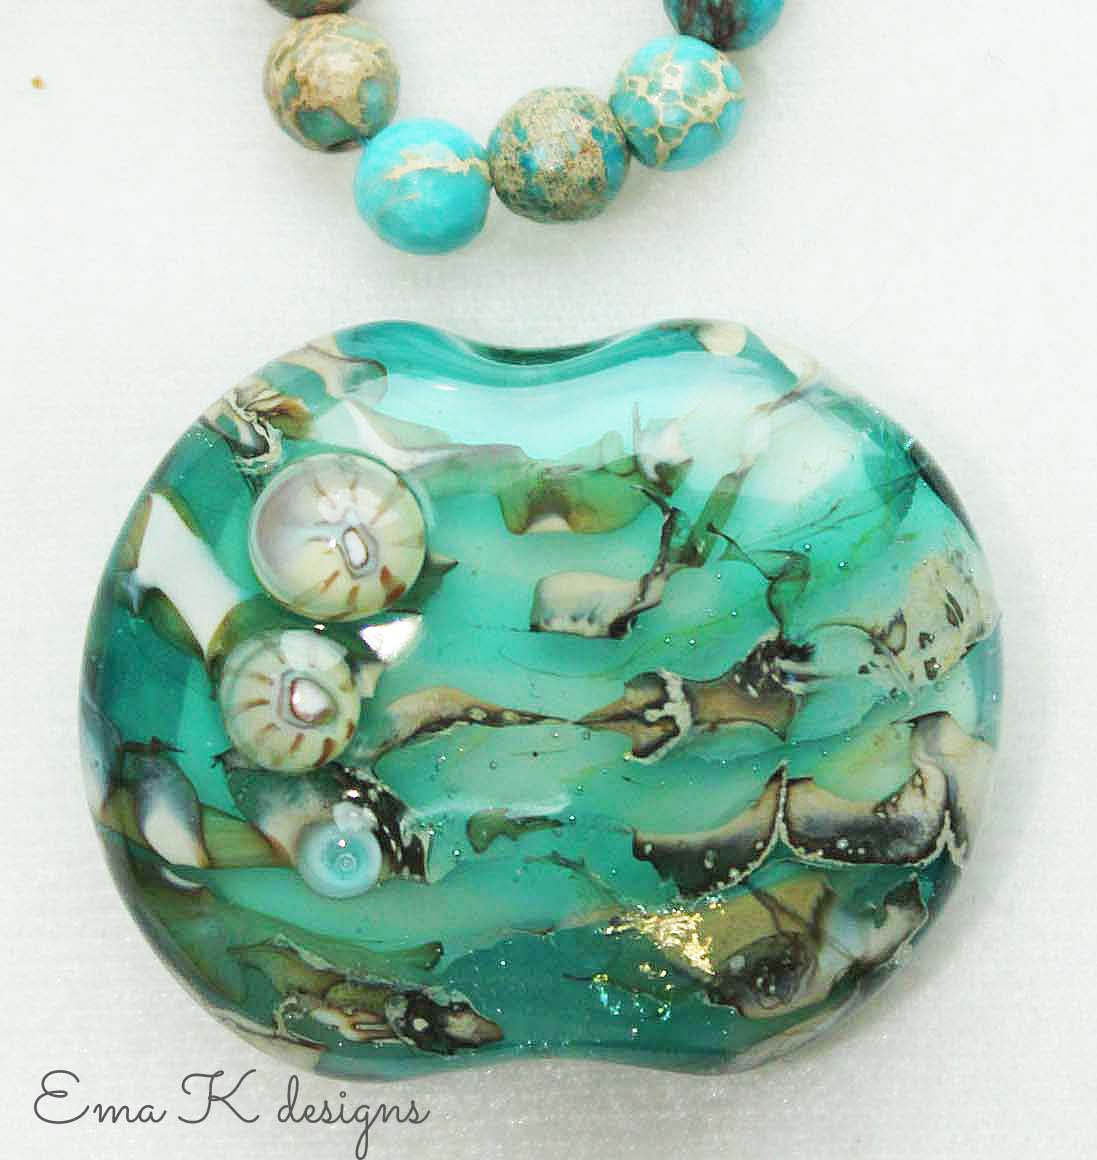 Unstrung art bead by Ema Kilroy with jasper rounds